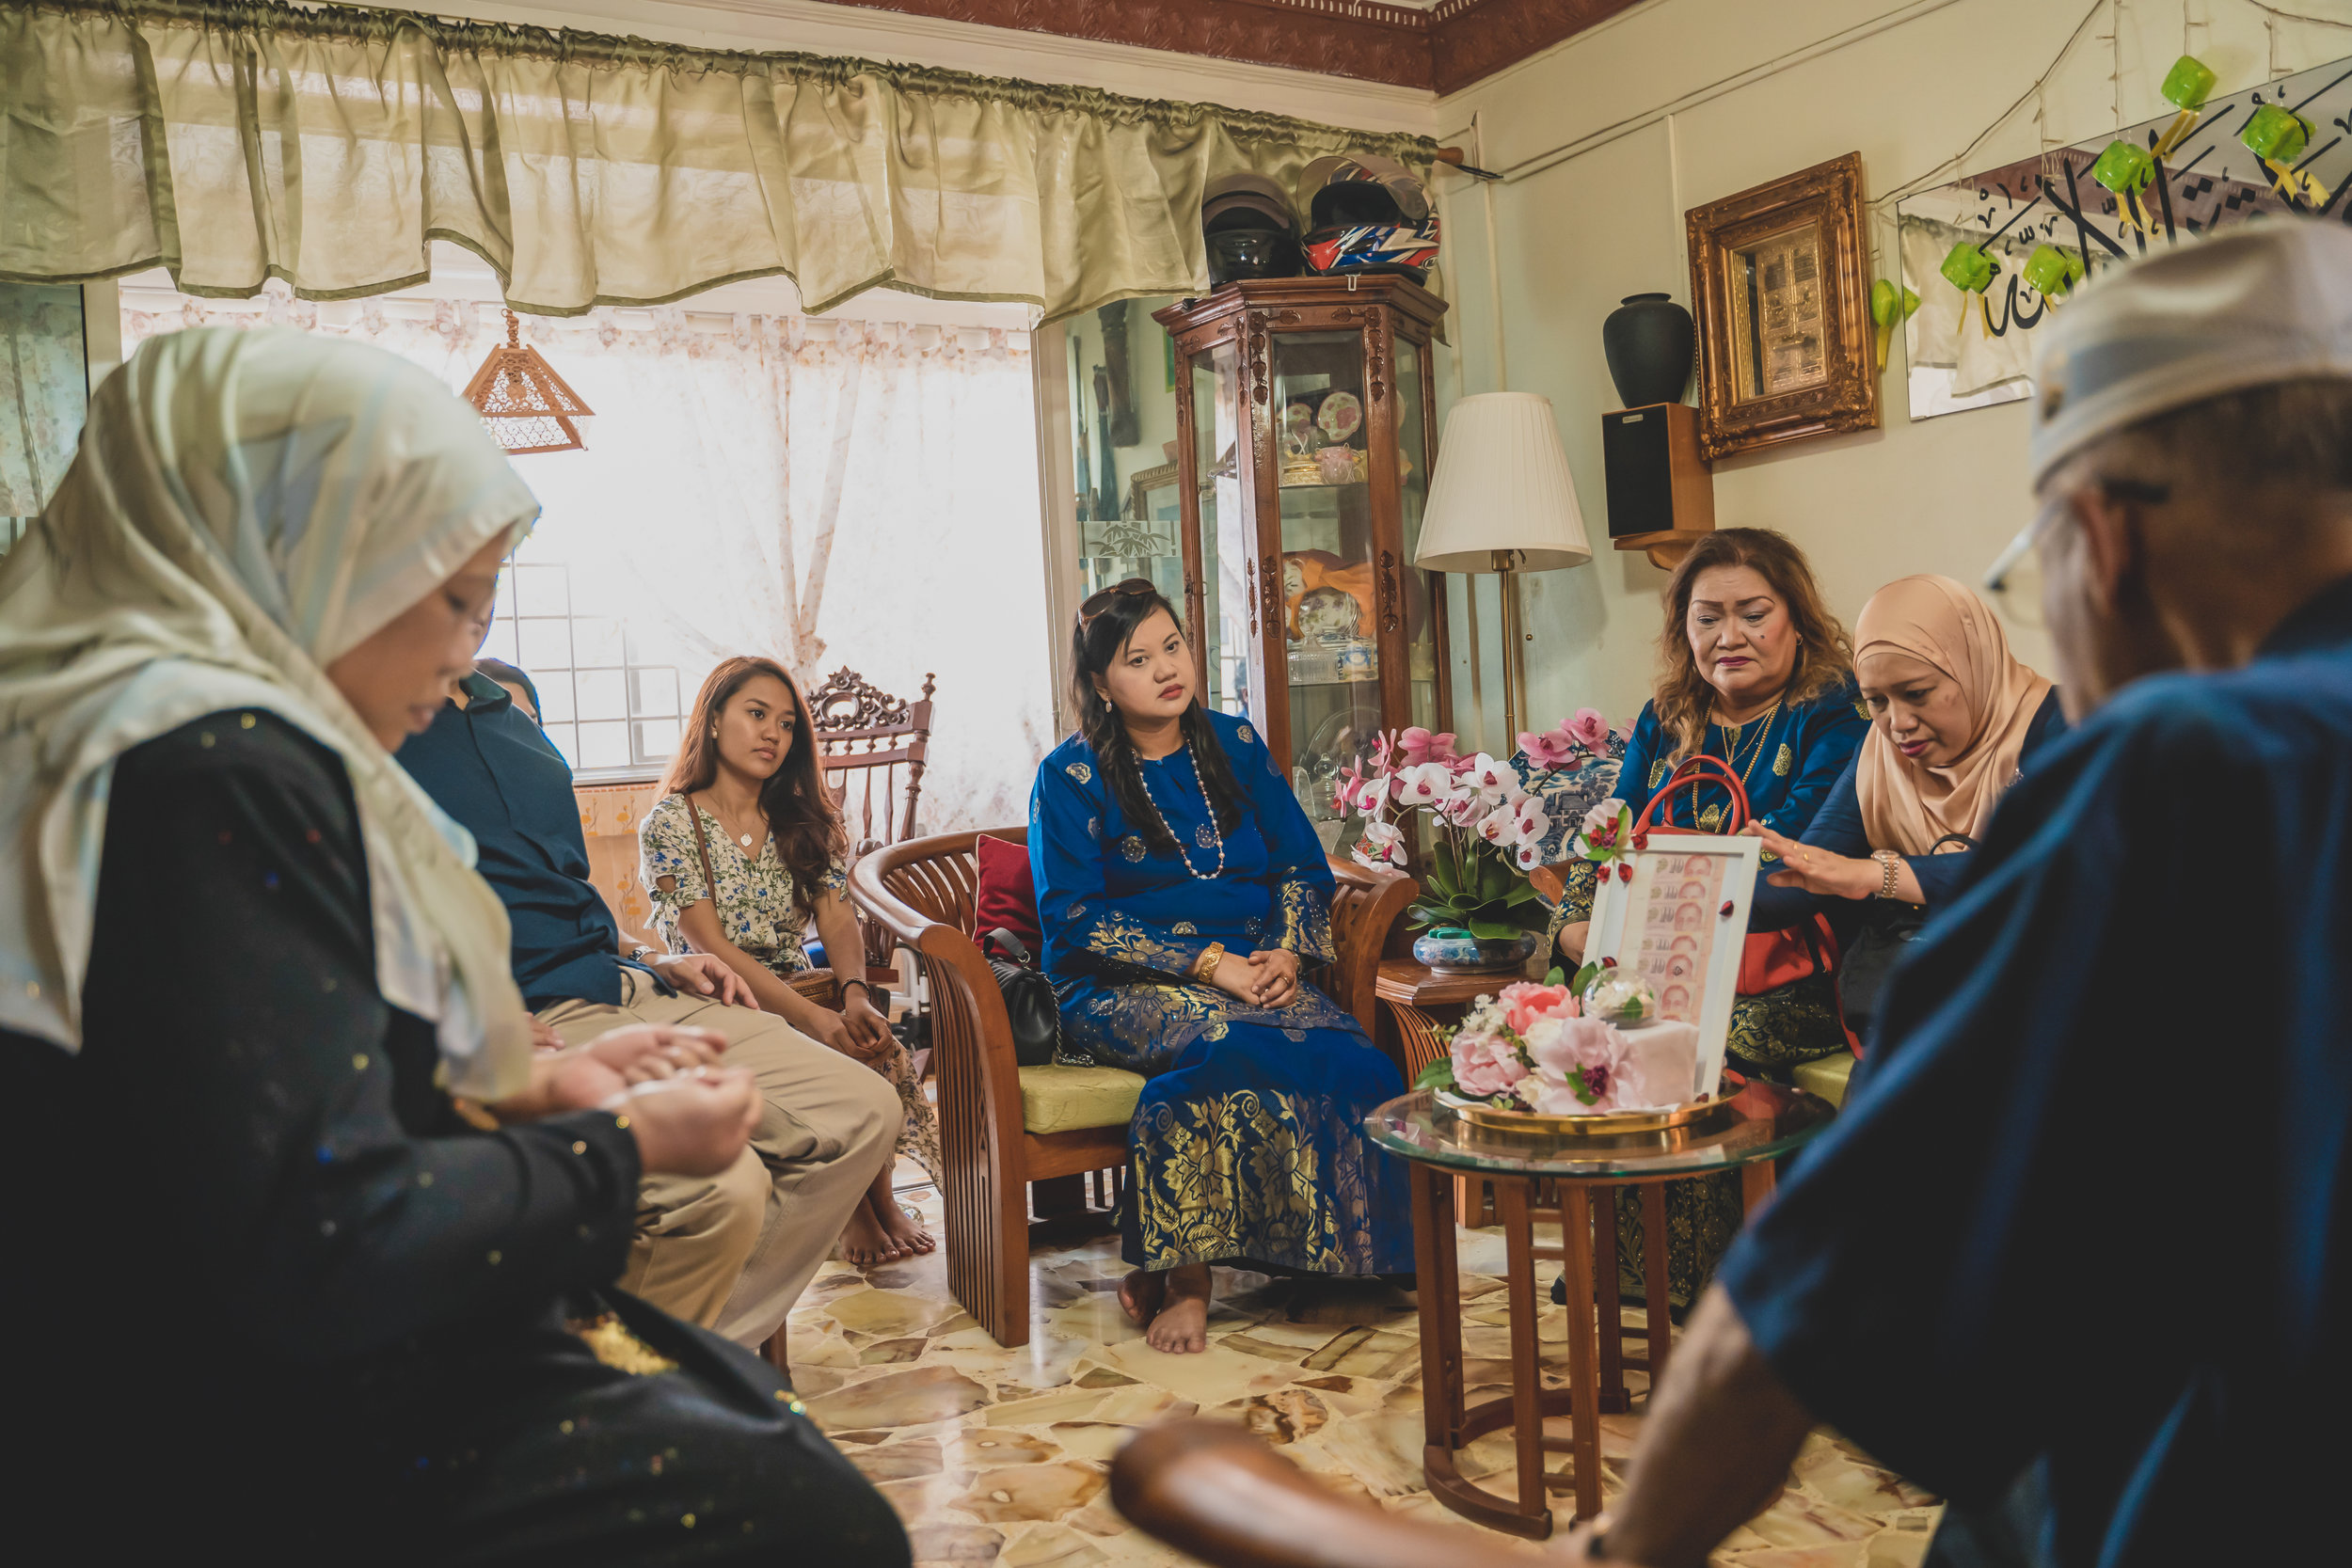 What is the trend for malay wedding video and photo in Singapore